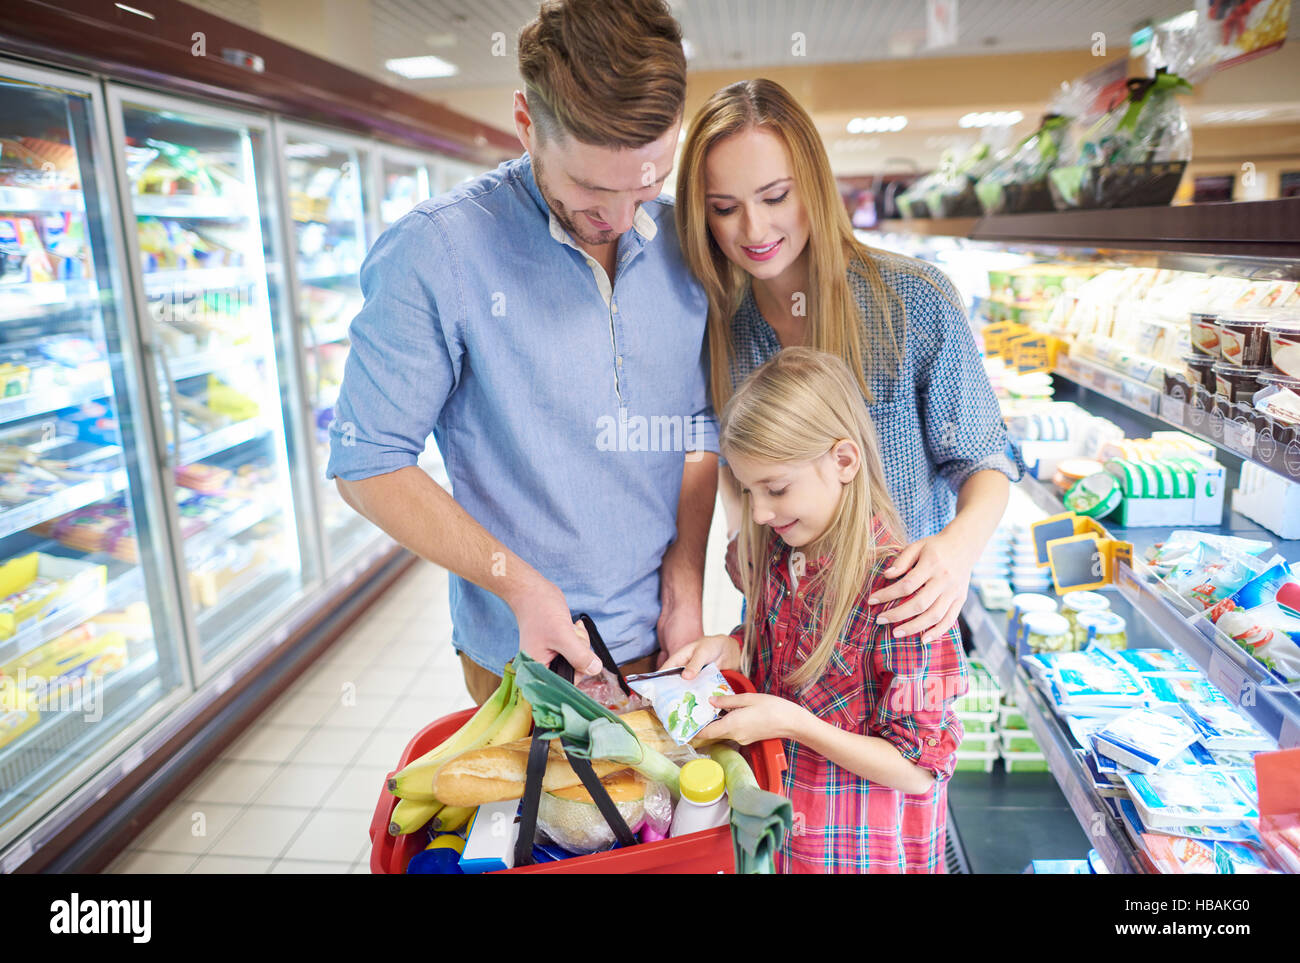 Family in supermarket aisle with full shopping basket - Stock Image